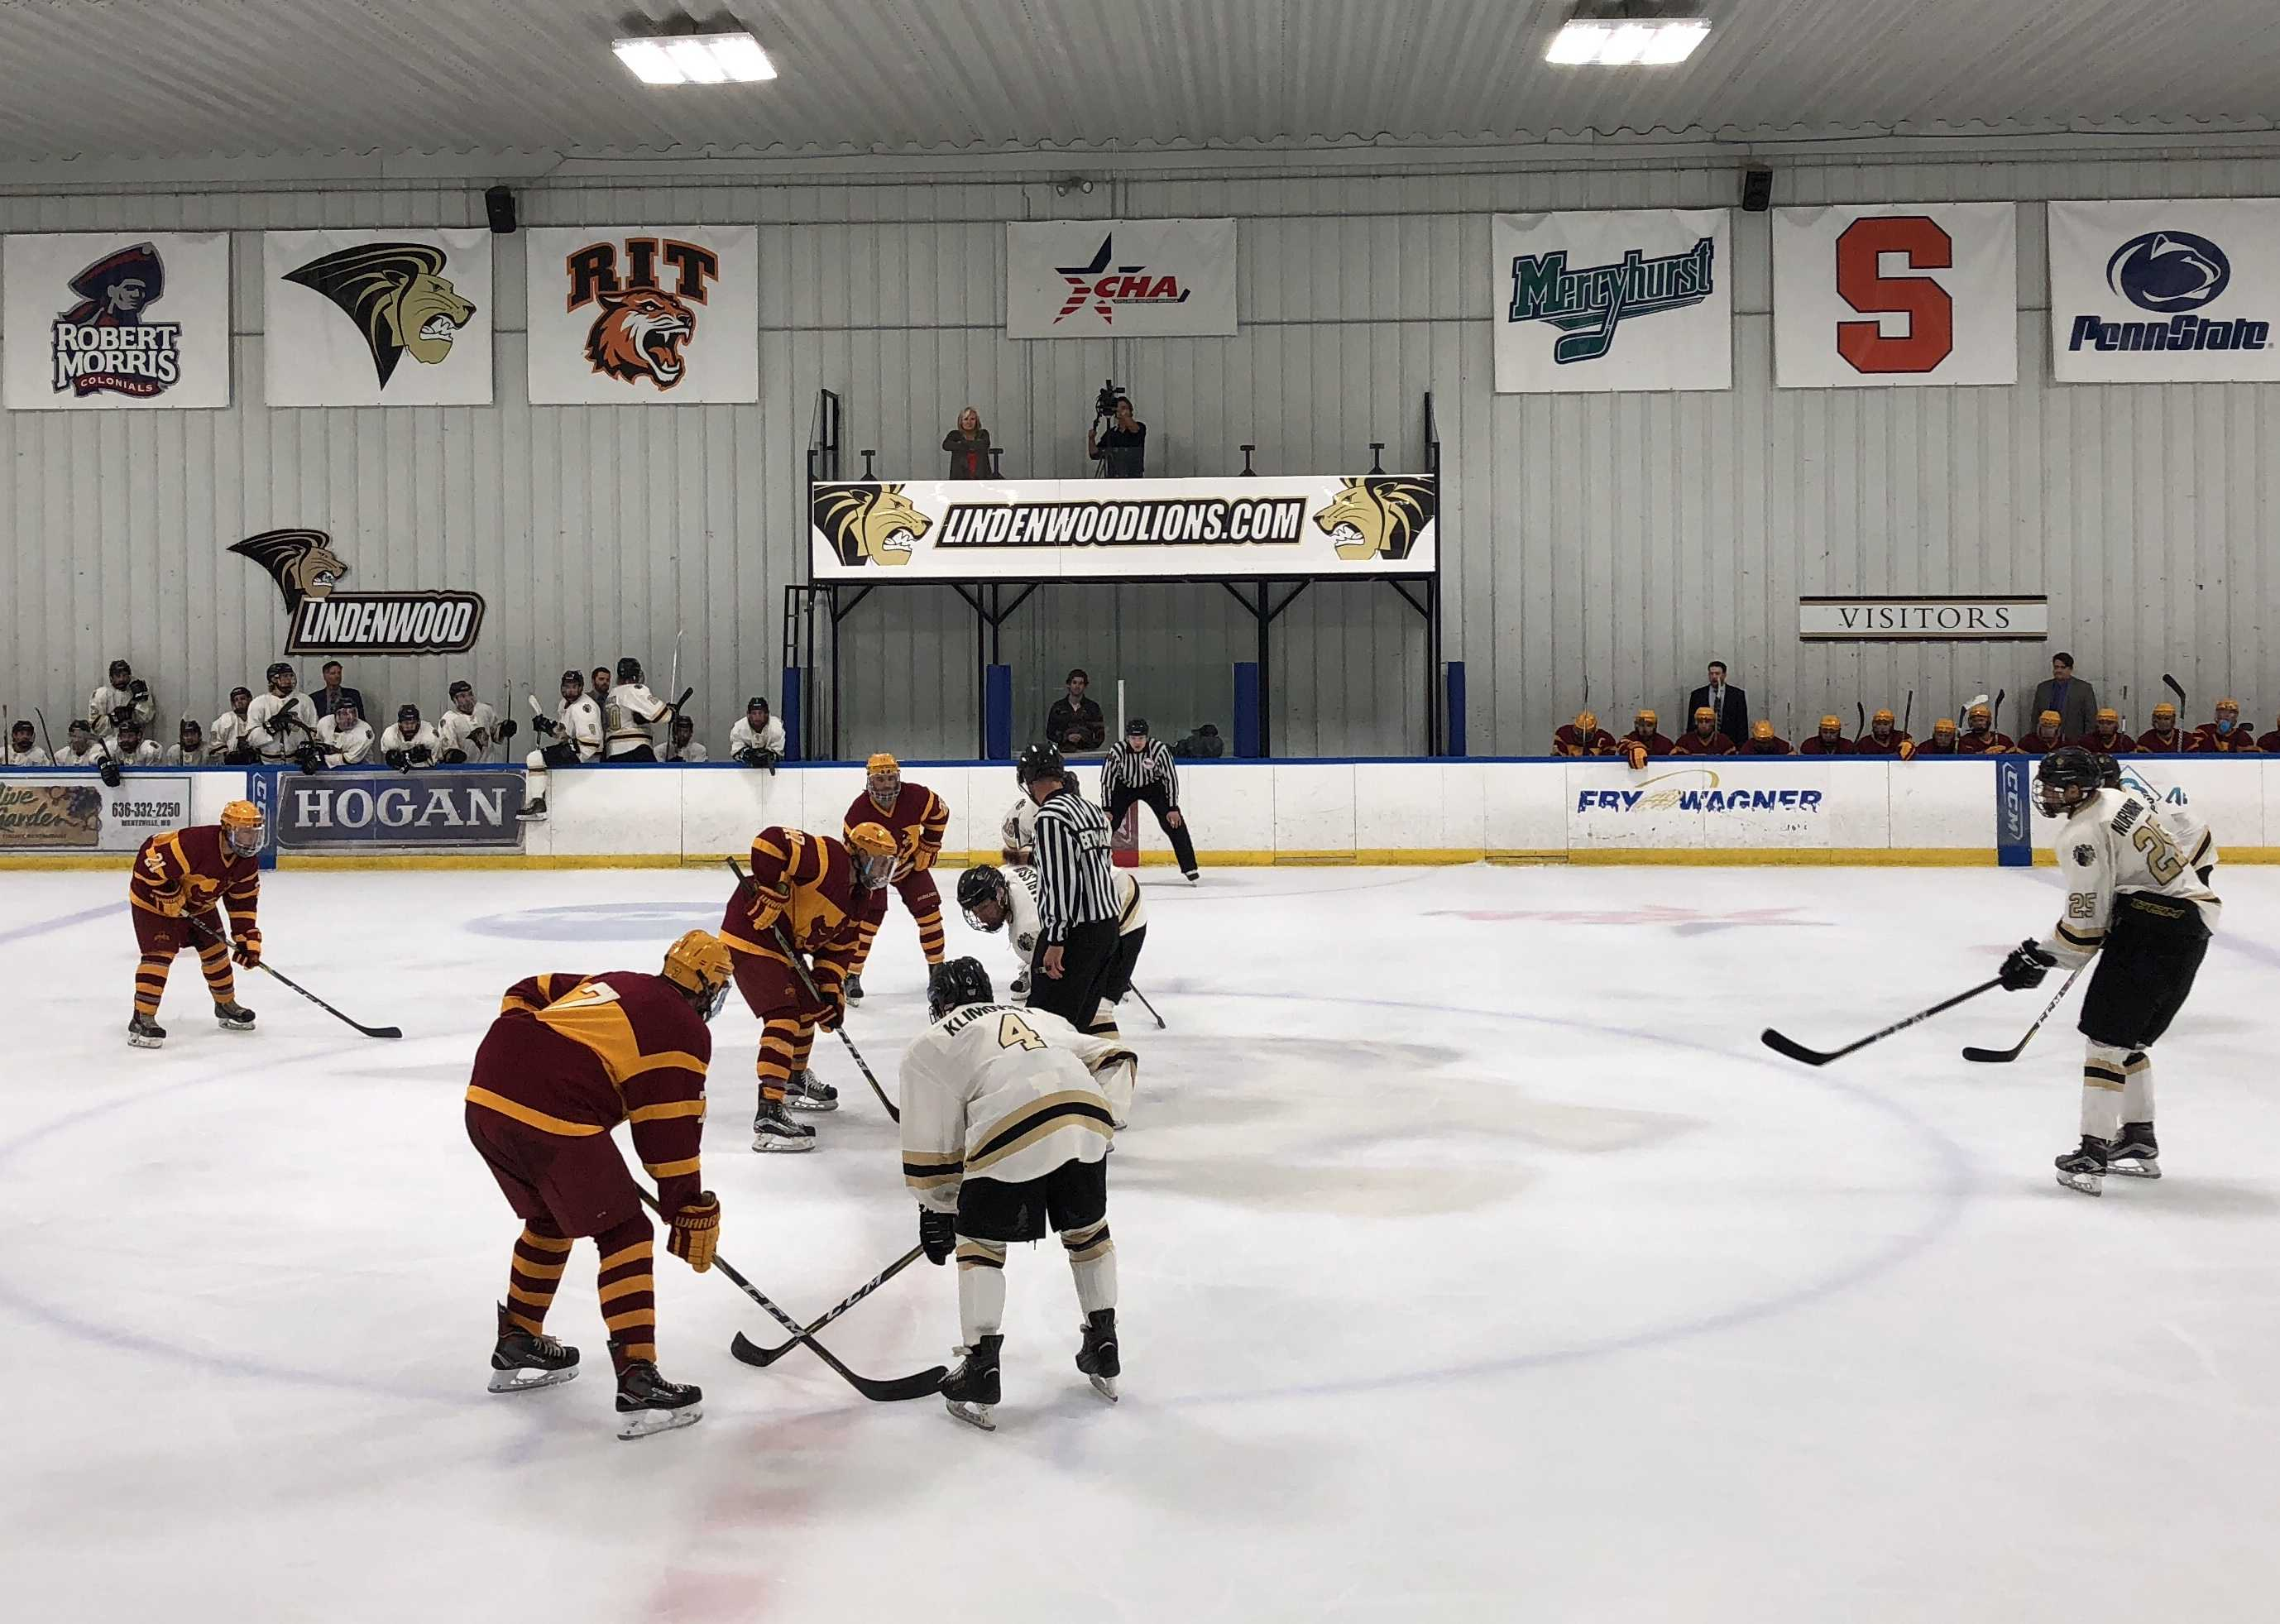 In a file photo from 2017, Lindenwood Lions face off against the Iowa State University Cyclones on Oct. 14 at the Wentzville Ice Arena.  Photo by Madeline Raineri.